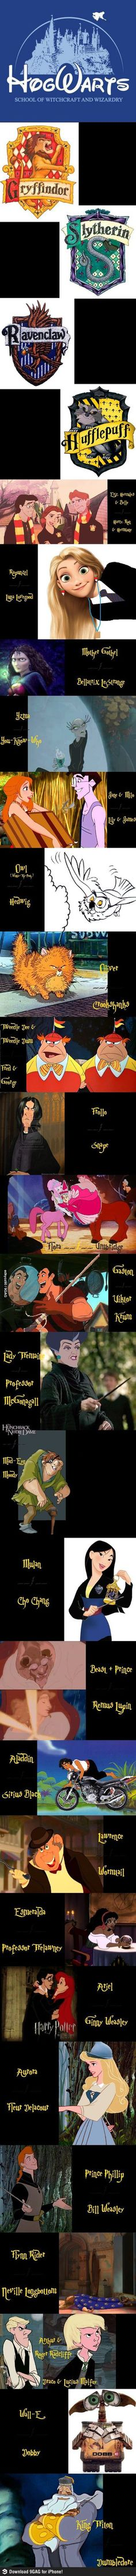 Disney Harry Potter :) props to whoever came up with this